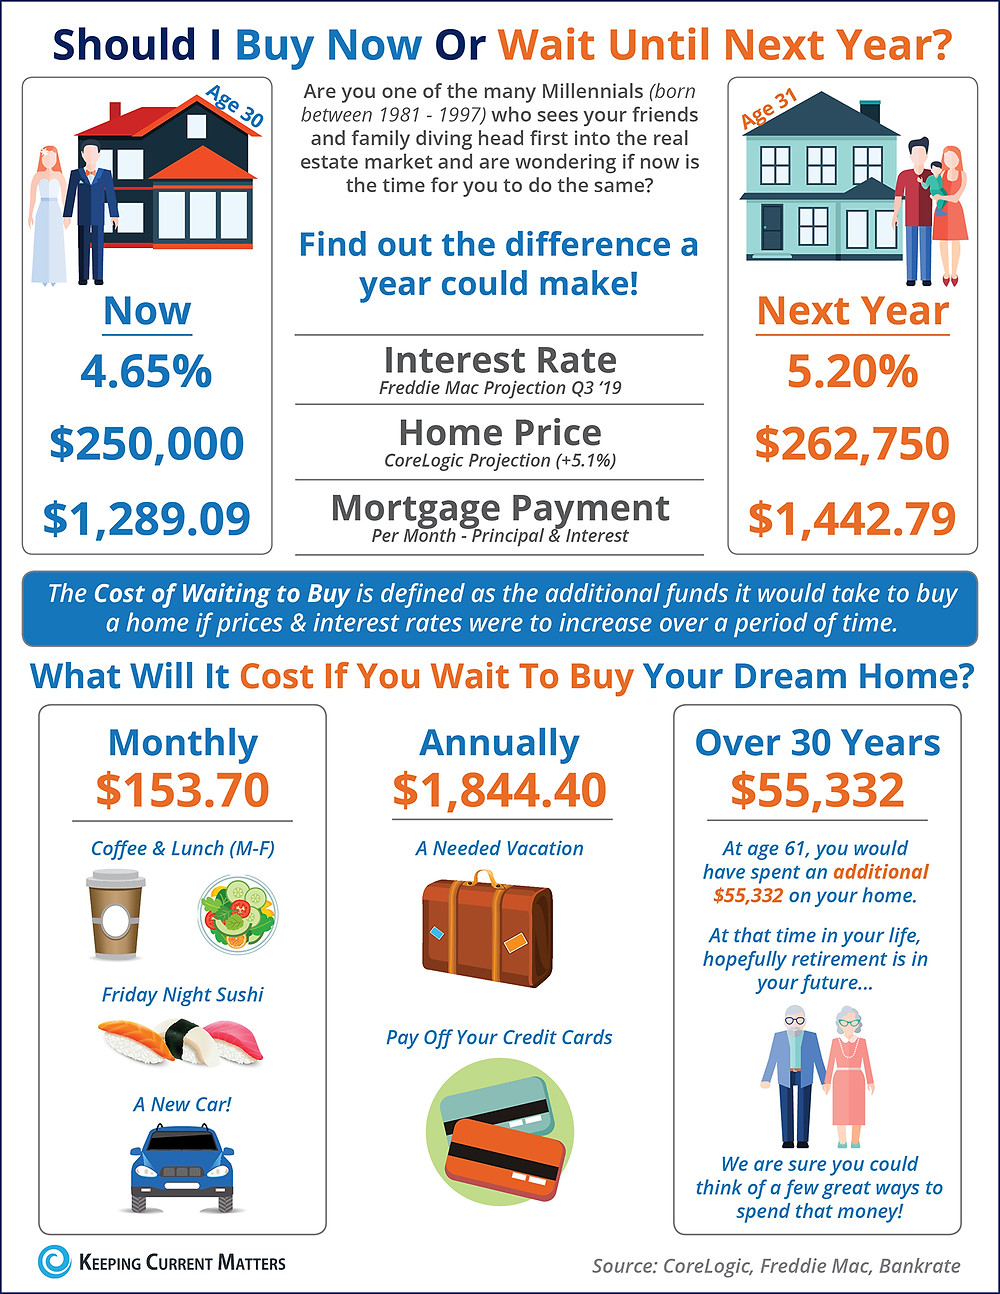 Should I Buy Now? Or Wait Until Next Year? [INFOGRAPHIC] | Keeping Current Matters